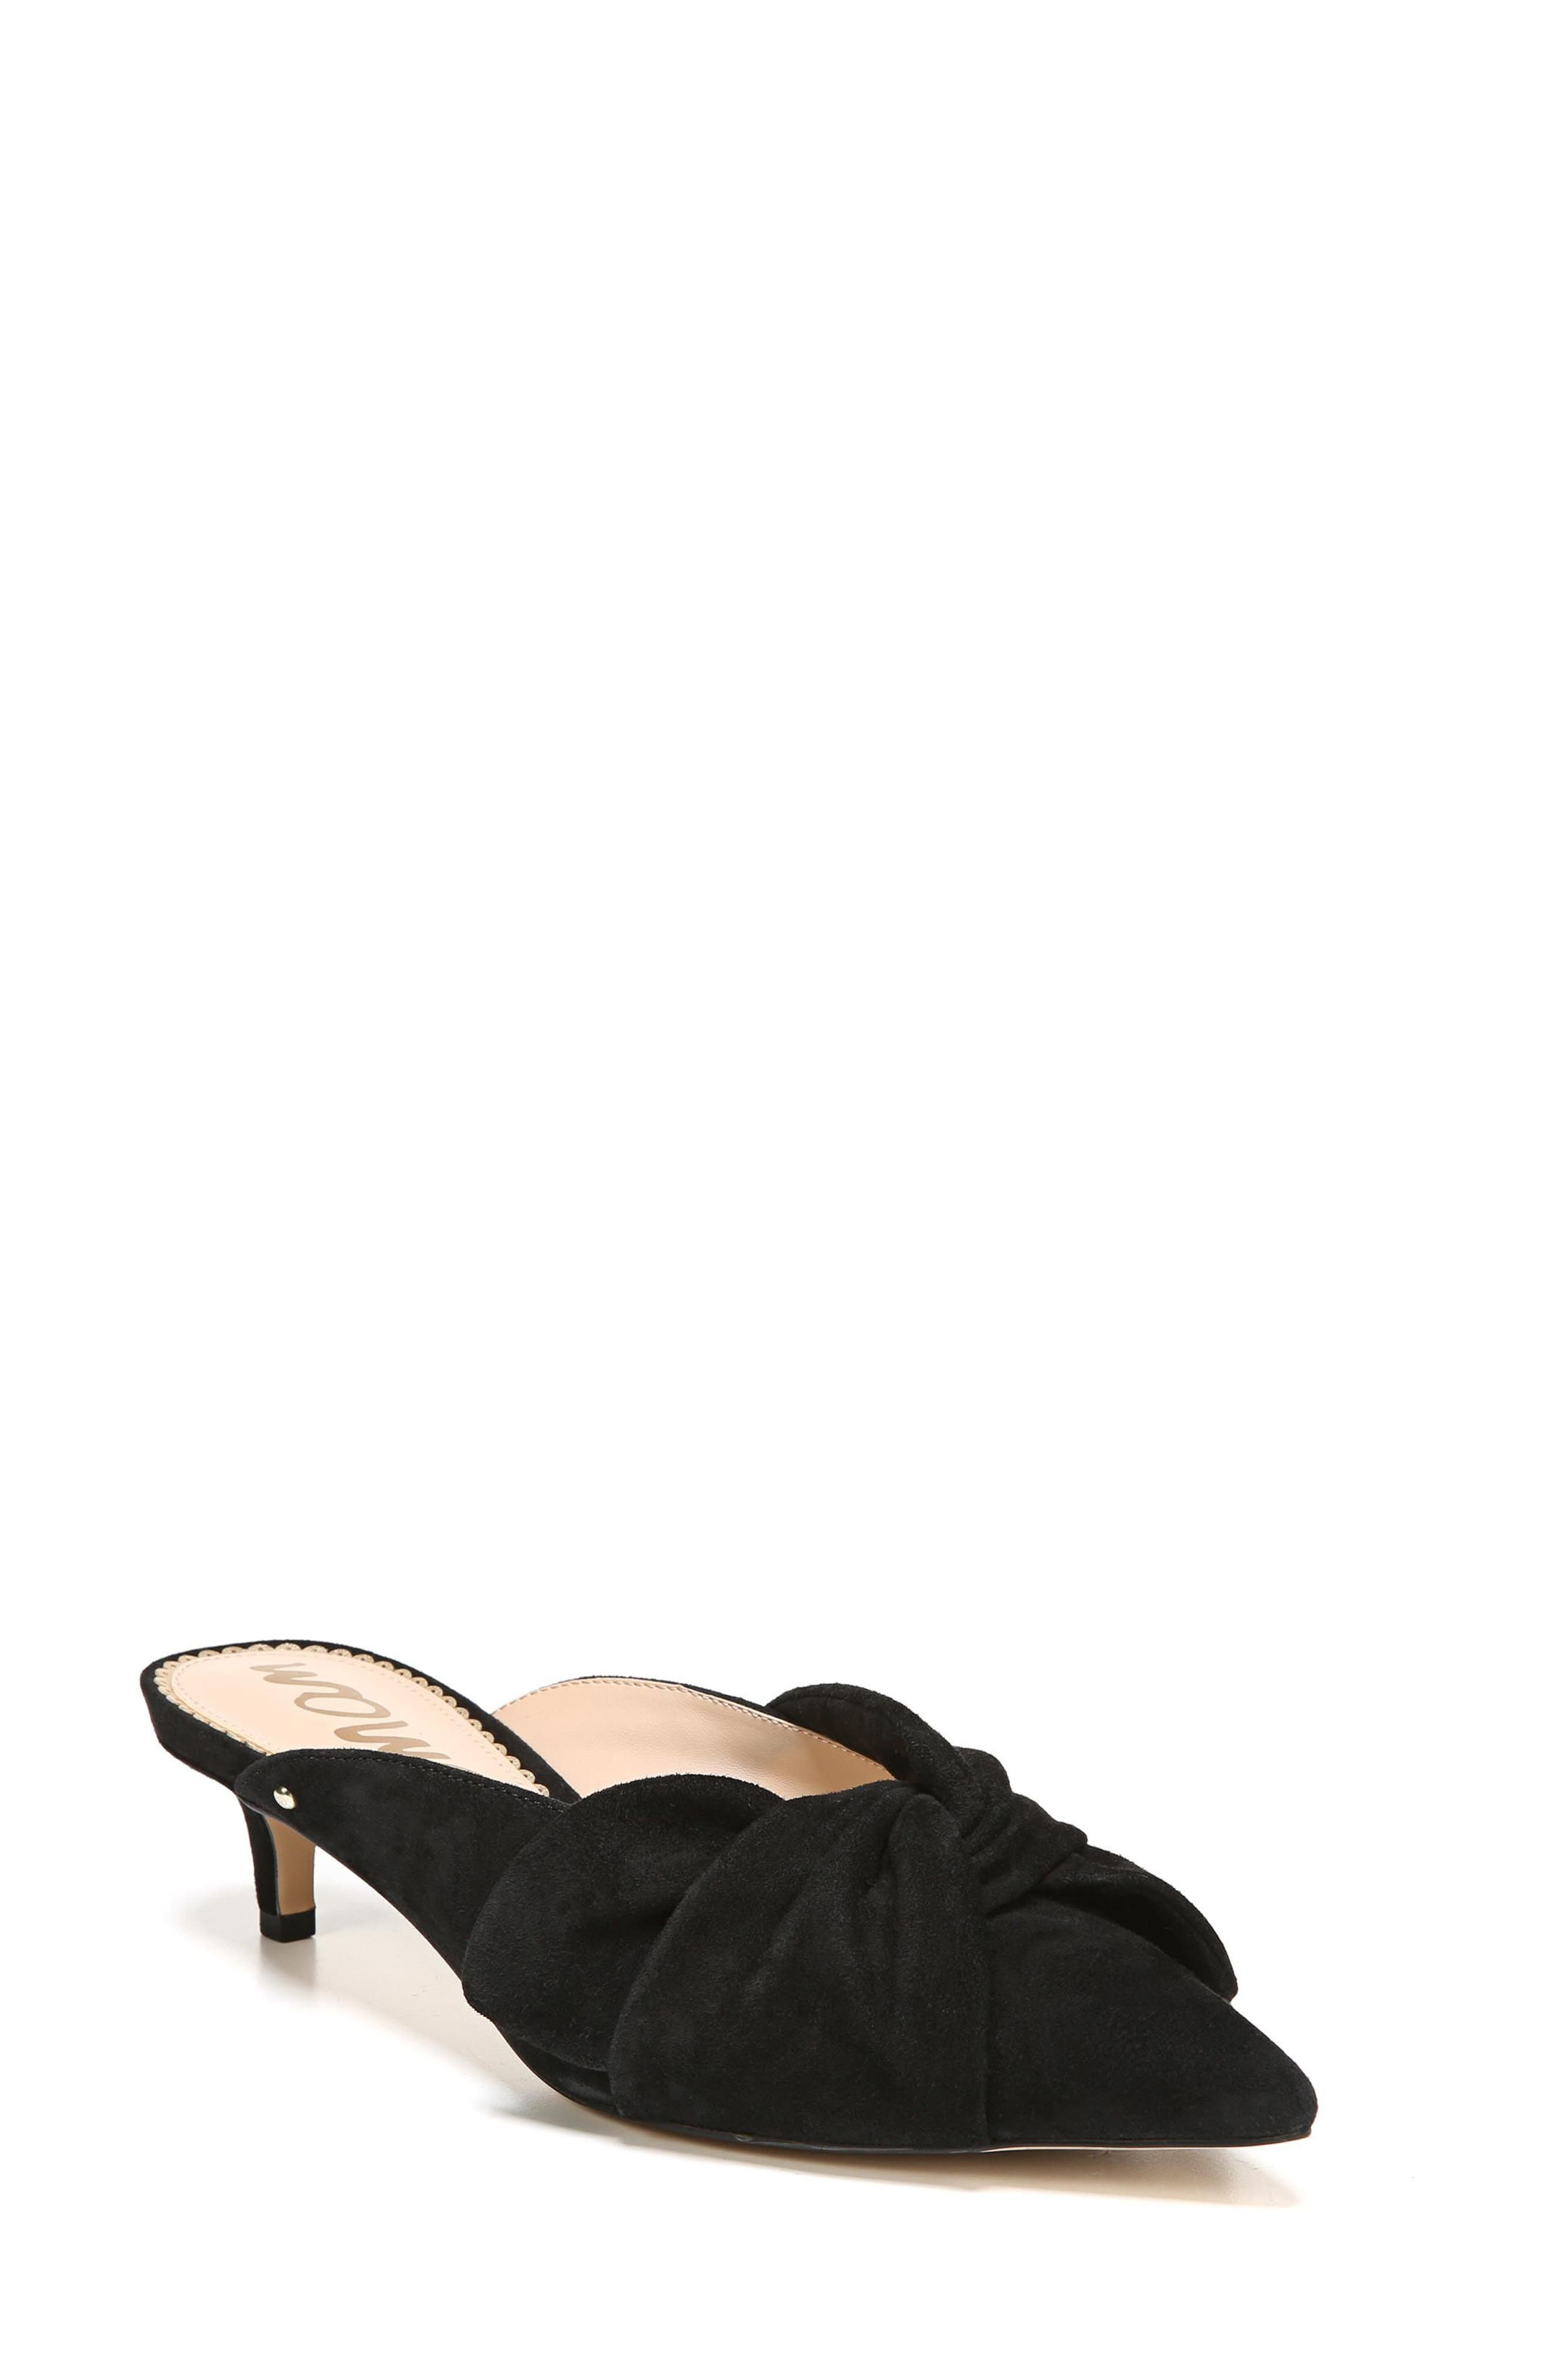 Laney Pointy Toe Mule,                         Main,                         color,